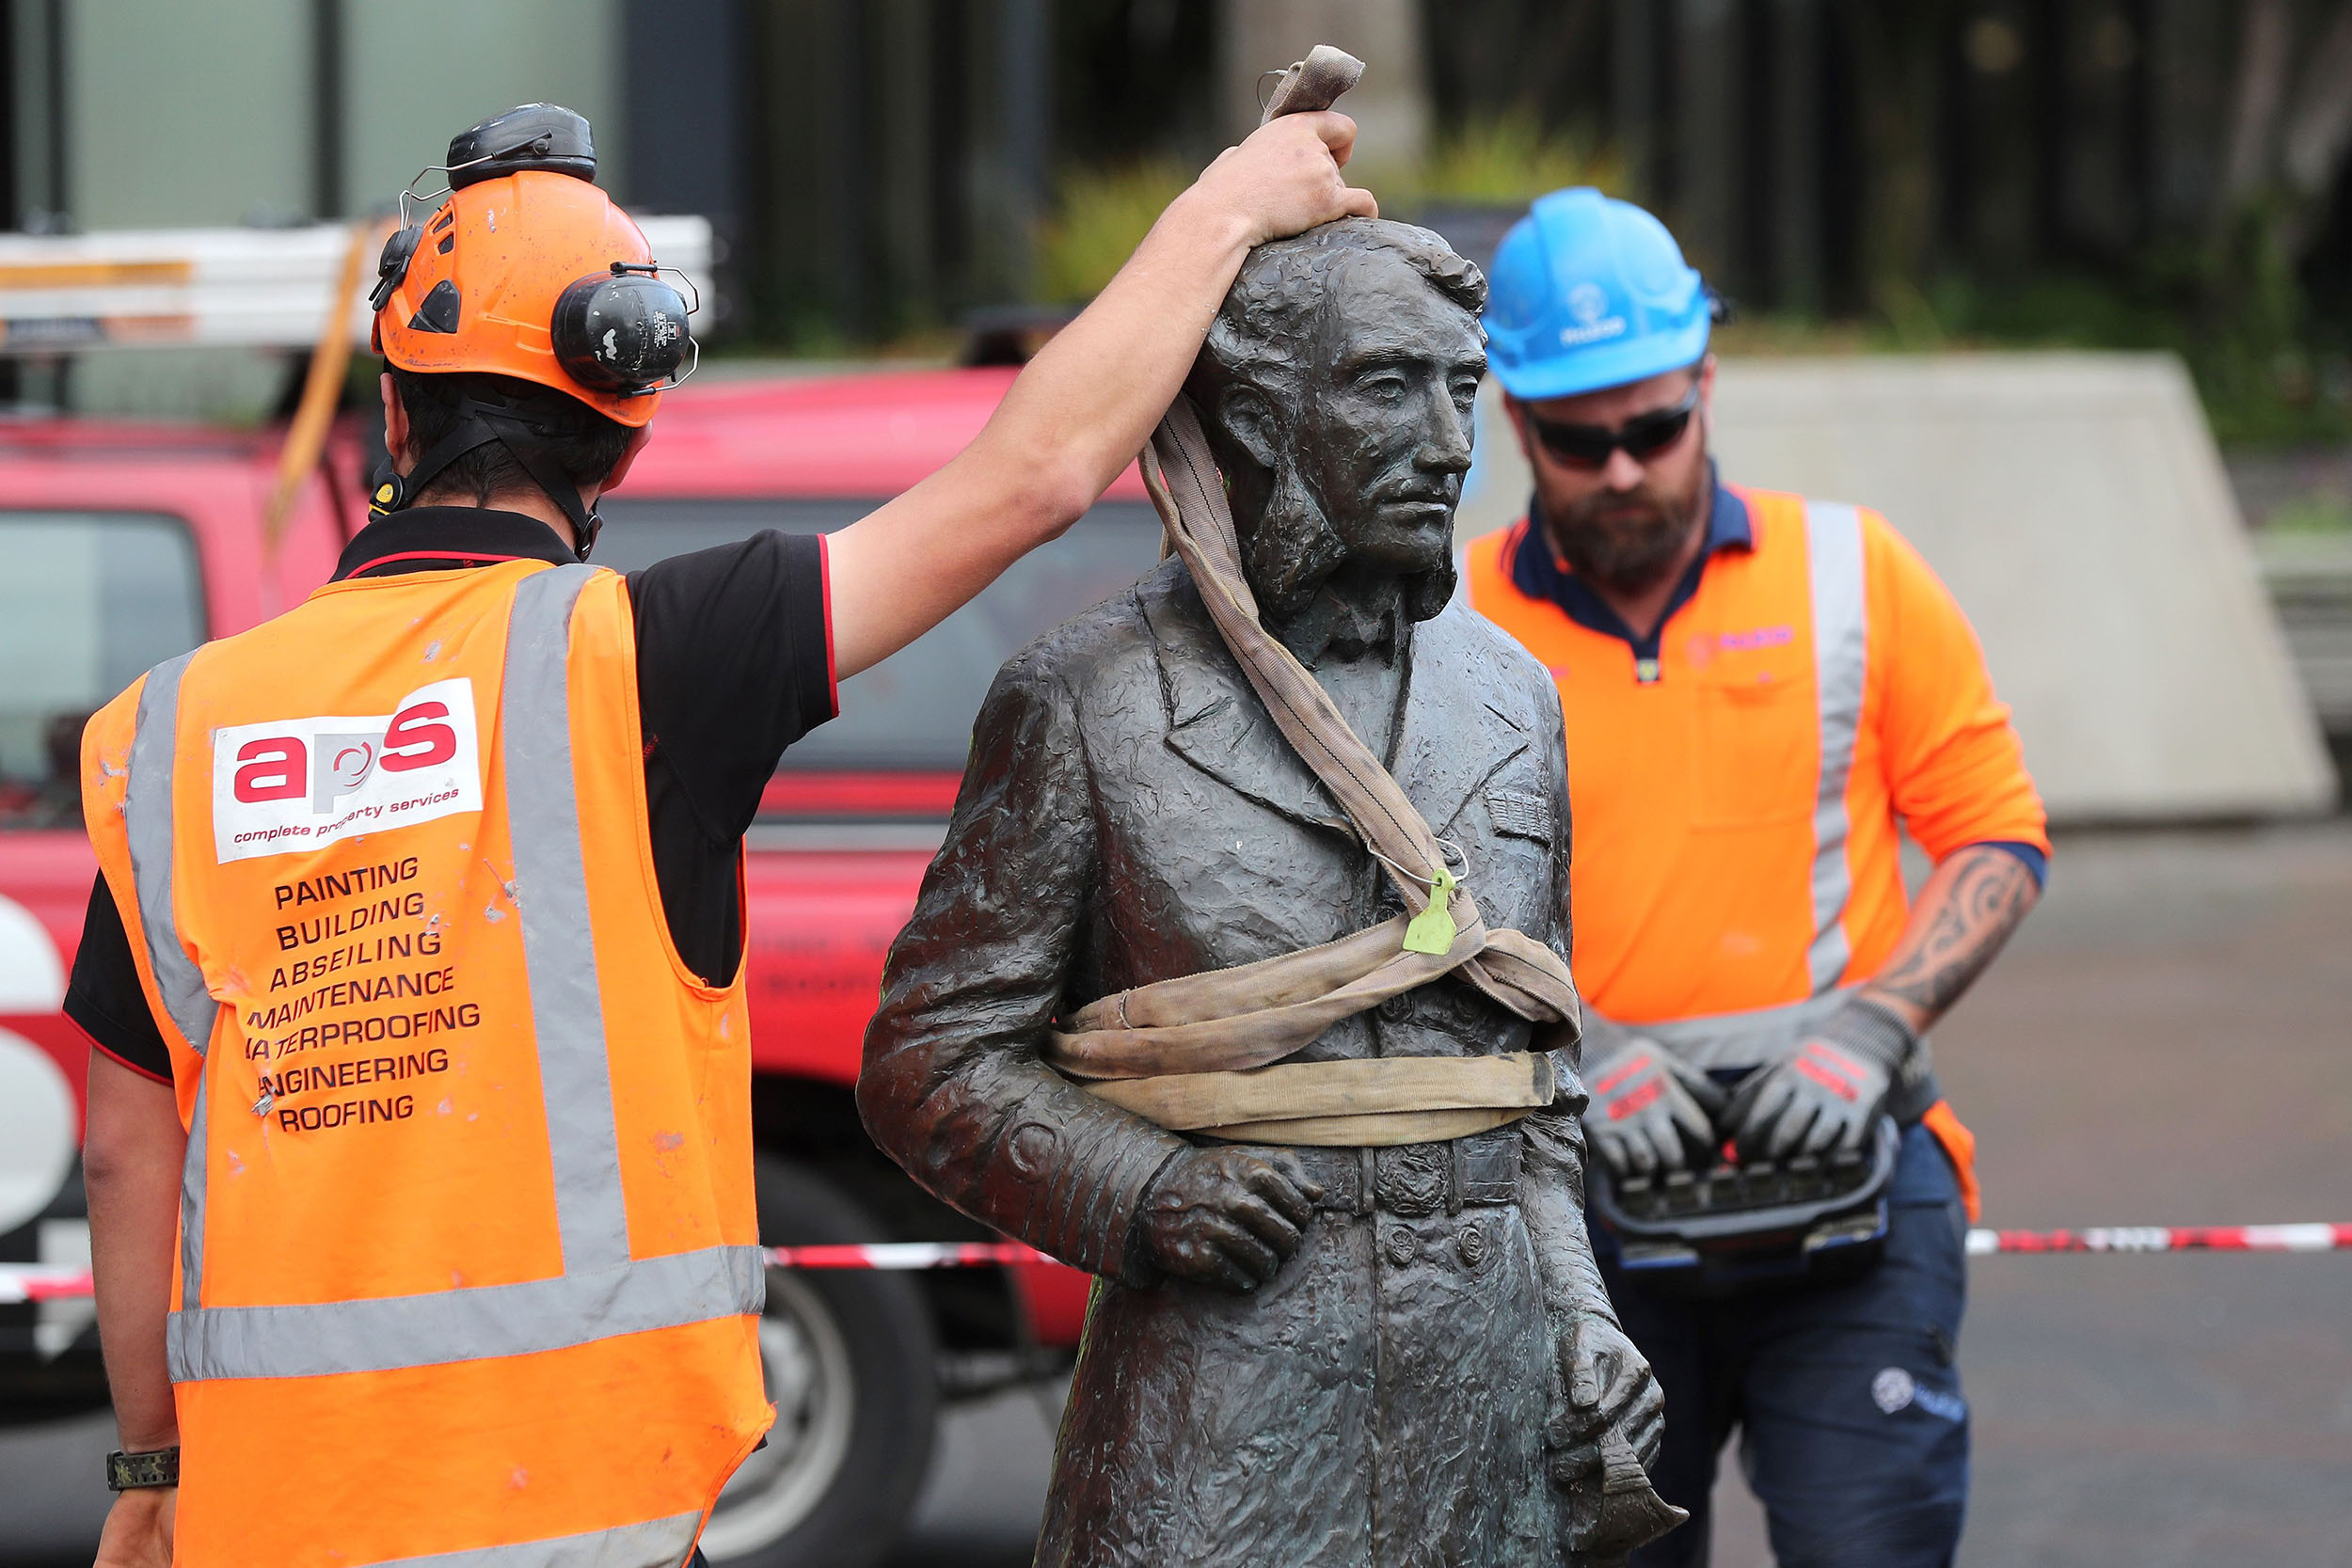 Workers remove a controversial statue of Captain John Fane Charles Hamilton from Civic Square in Hamilton, New Zealand, on June 12.